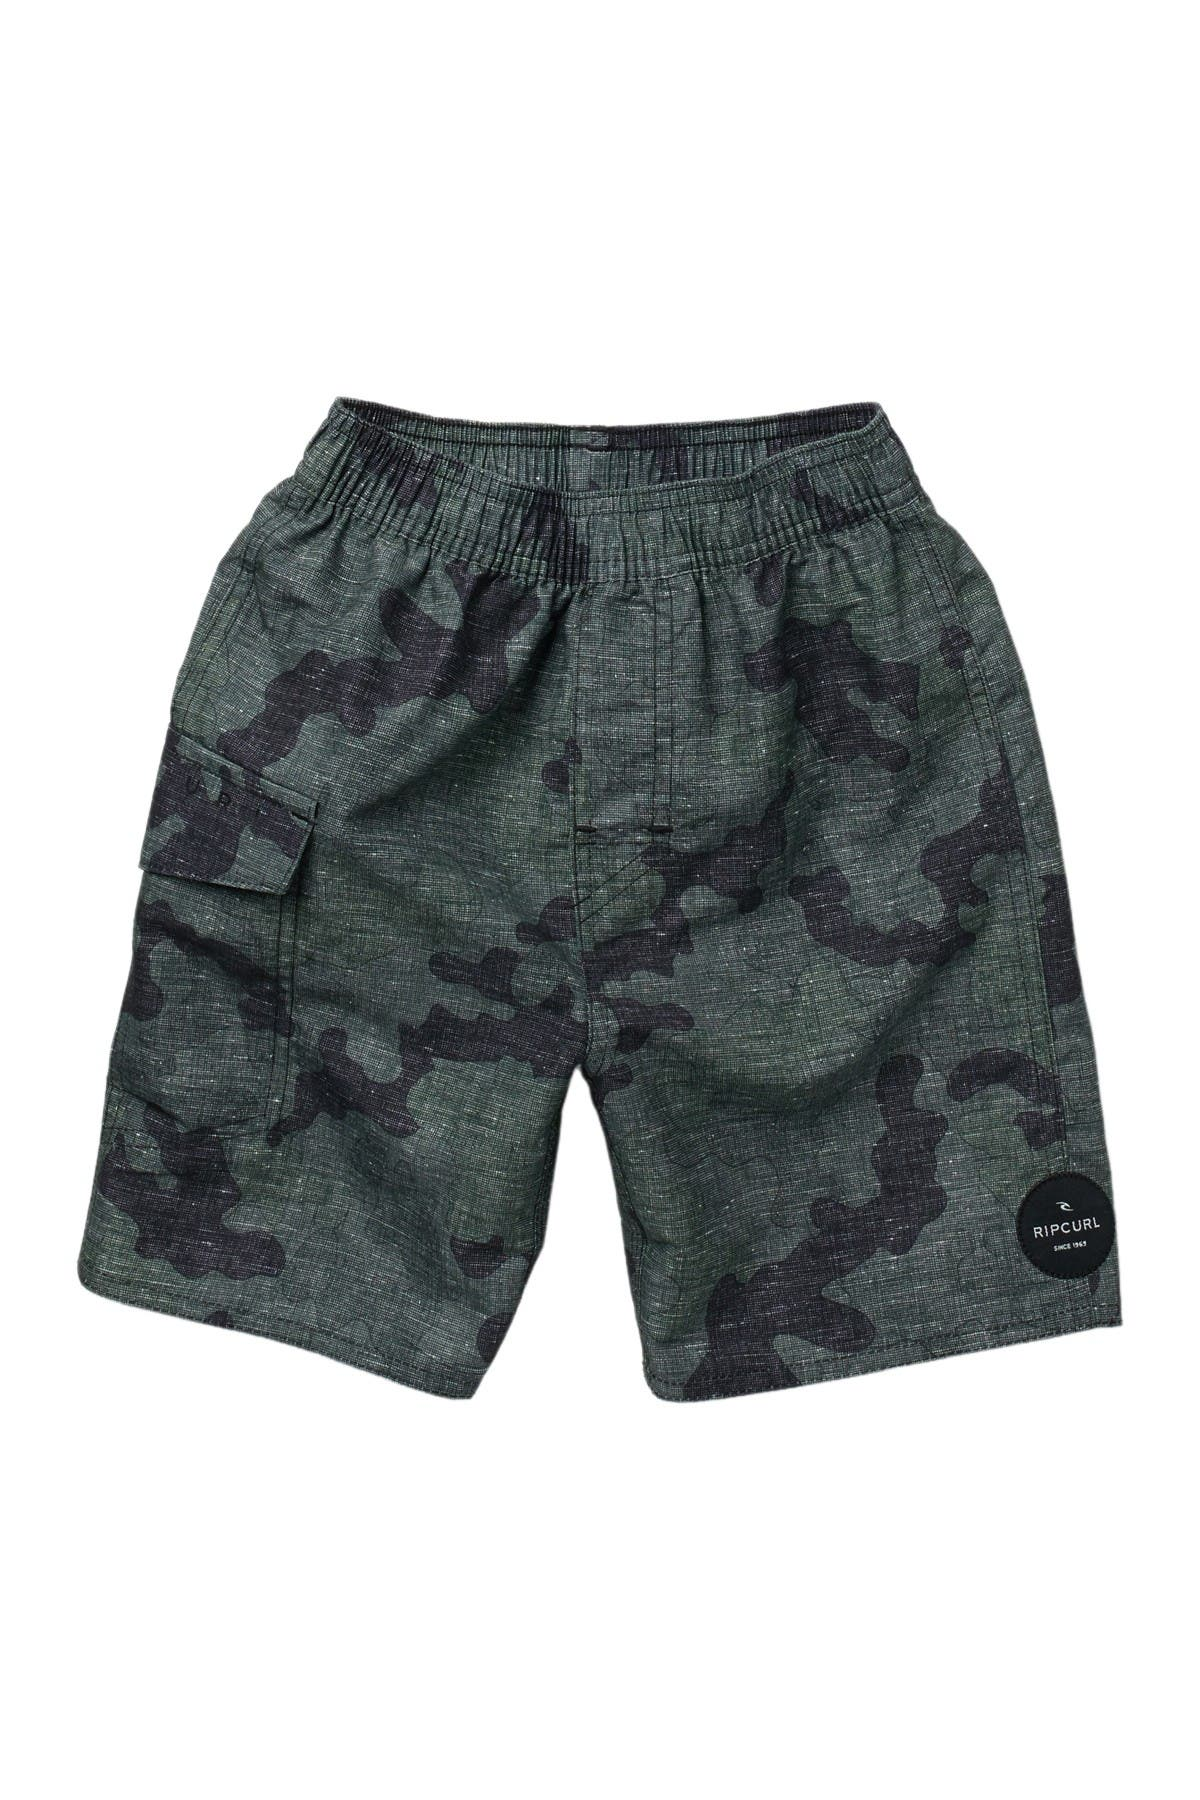 Image of Rip Curl Core Volley Swim Trunks